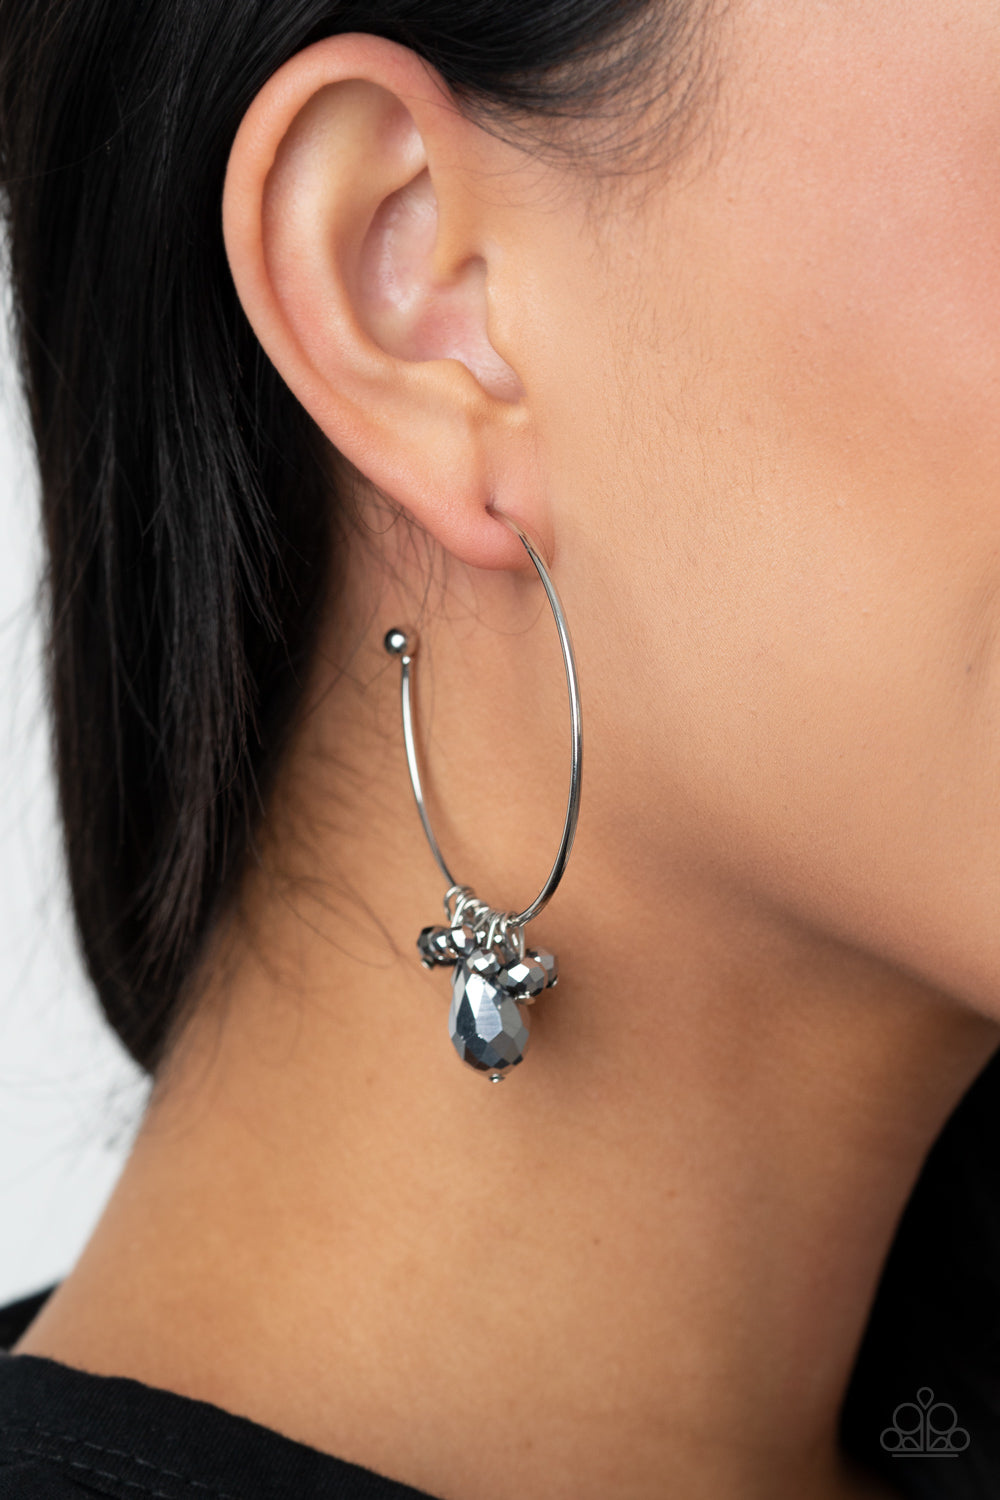 Dazzling Downpour - Silver Earrings - Paparazzi Accessories